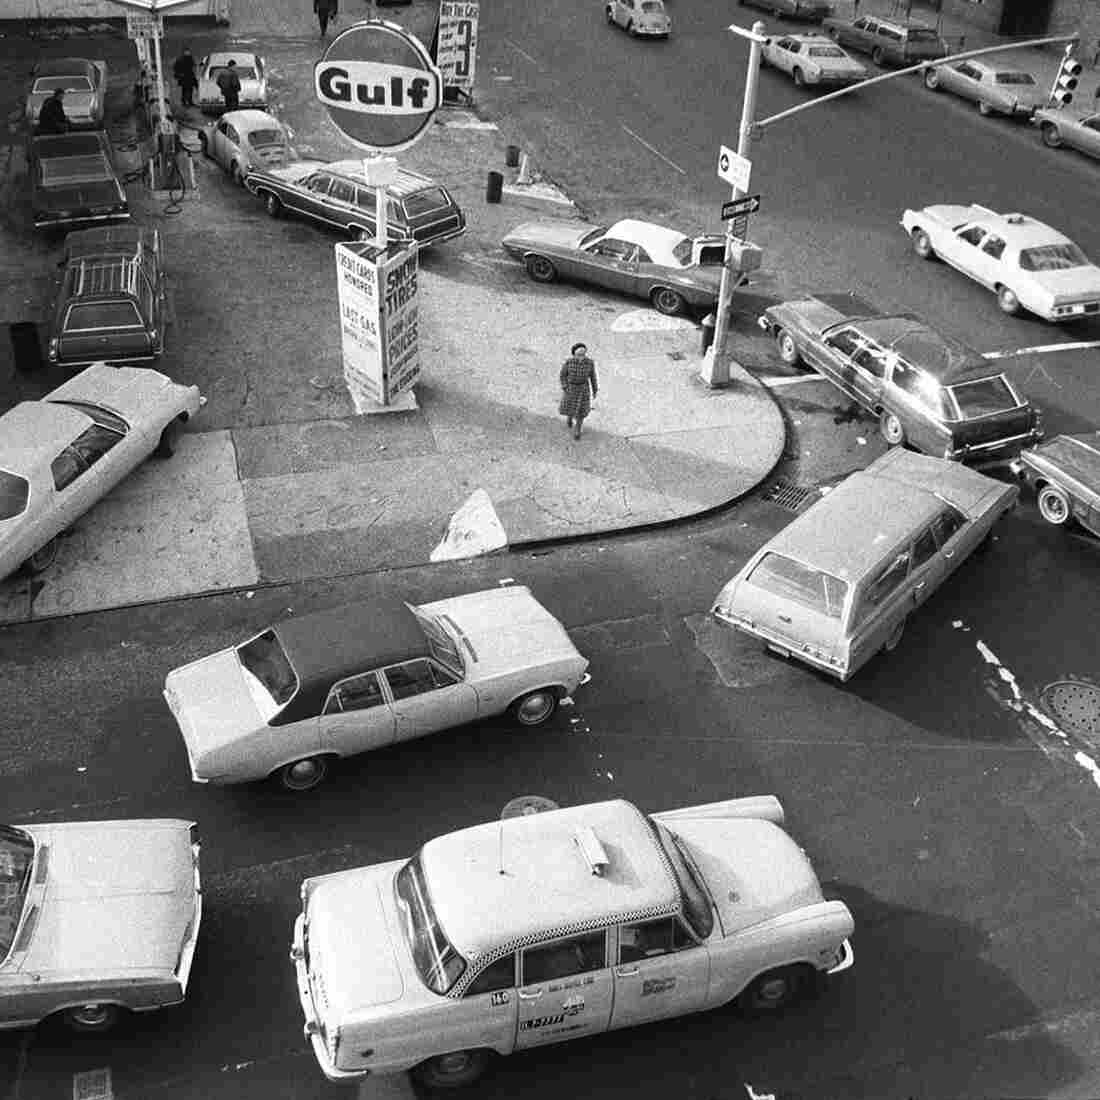 The 1973 Arab Oil Embargo: The Old Rules No Longer Apply